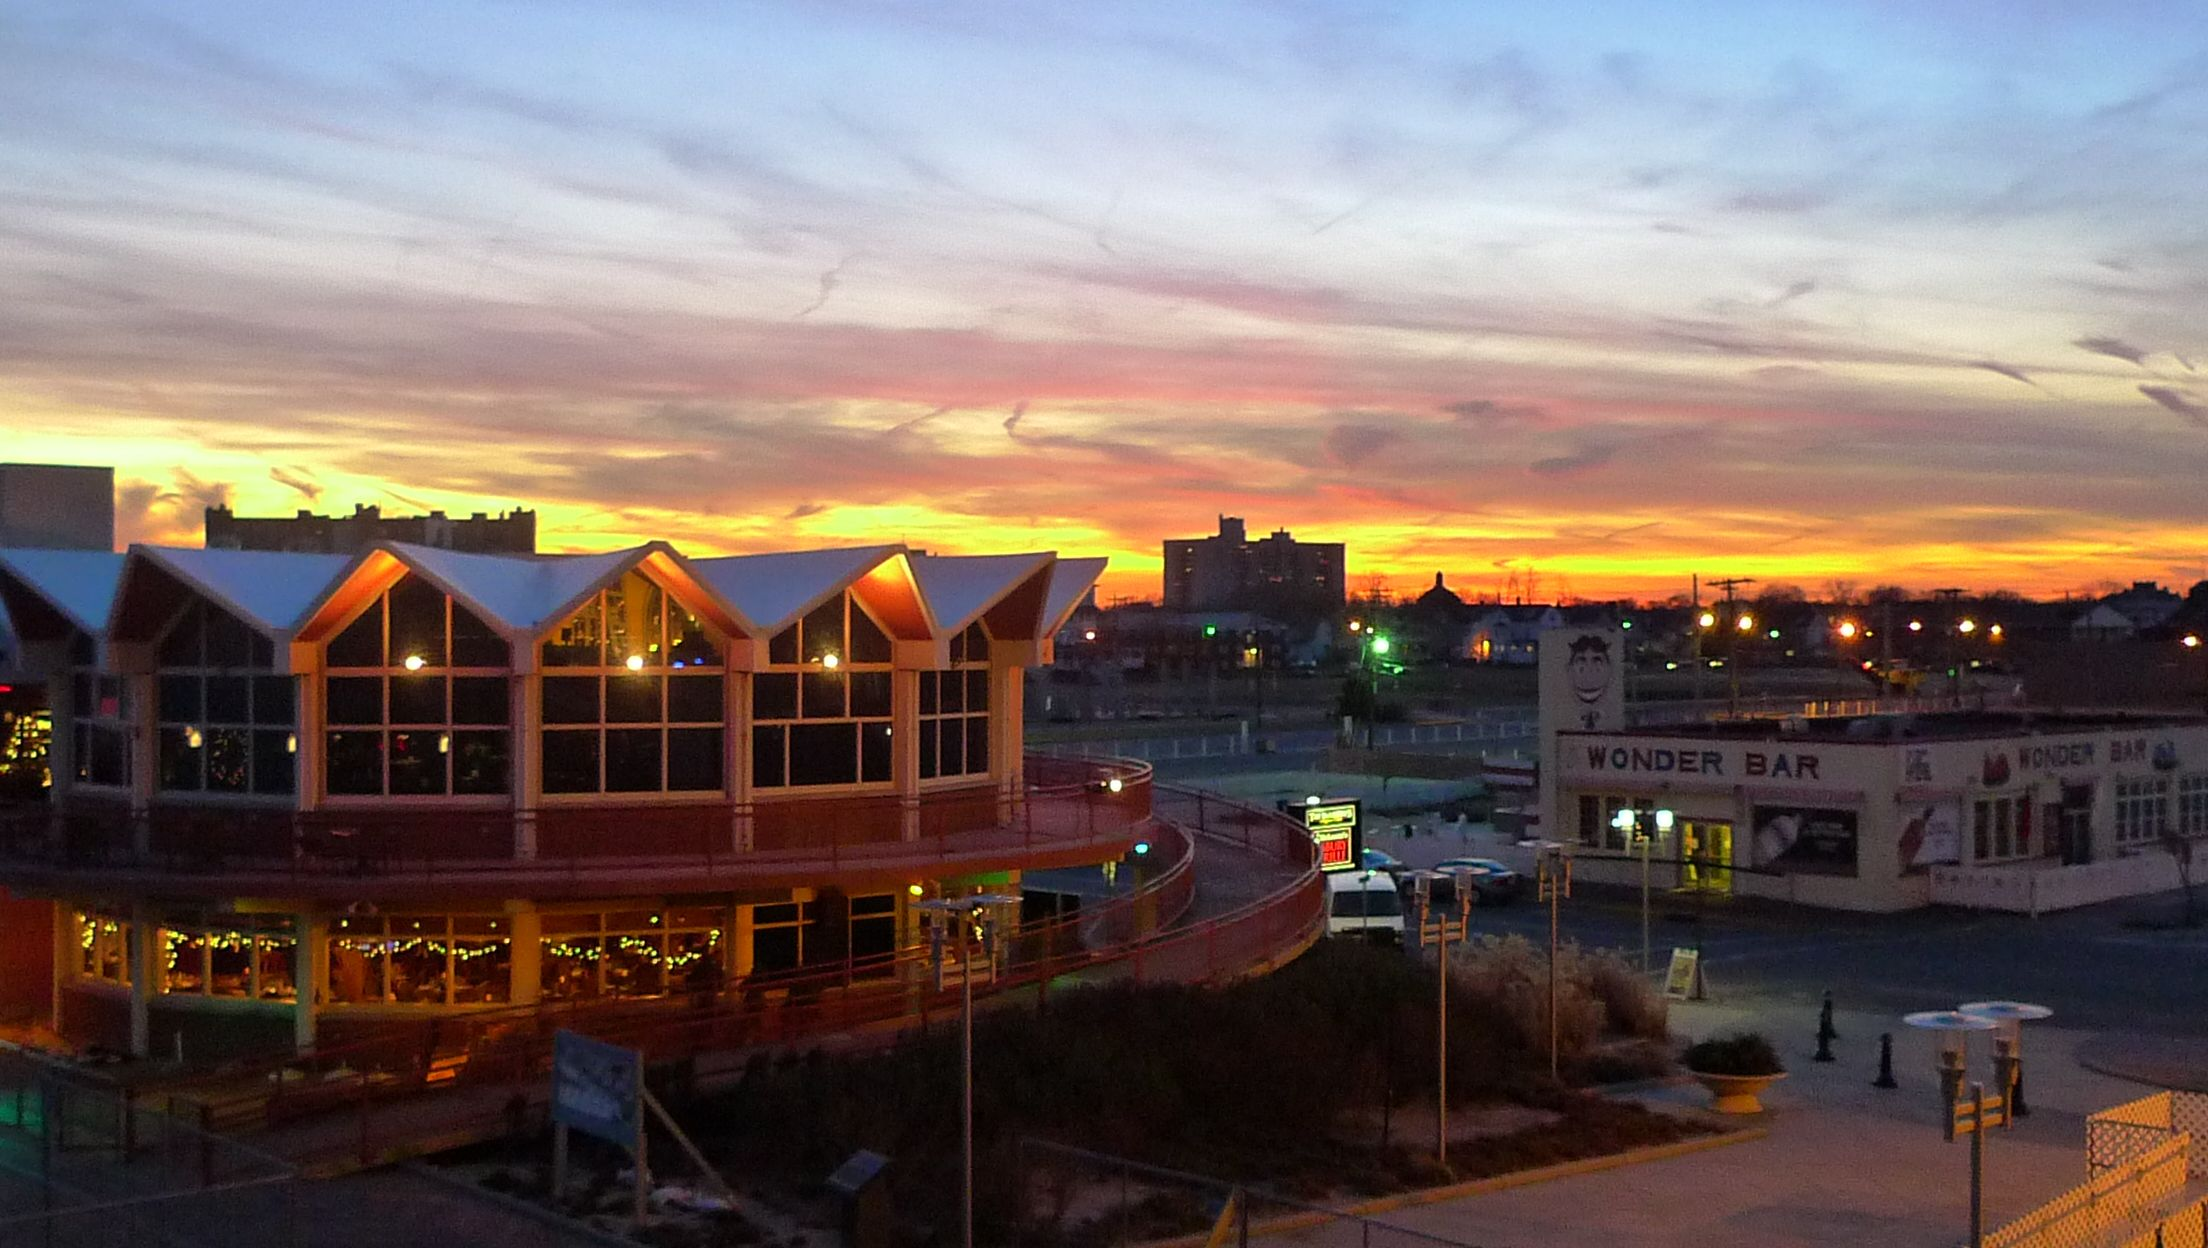 Sunset on the Asbury Park Boardwalk